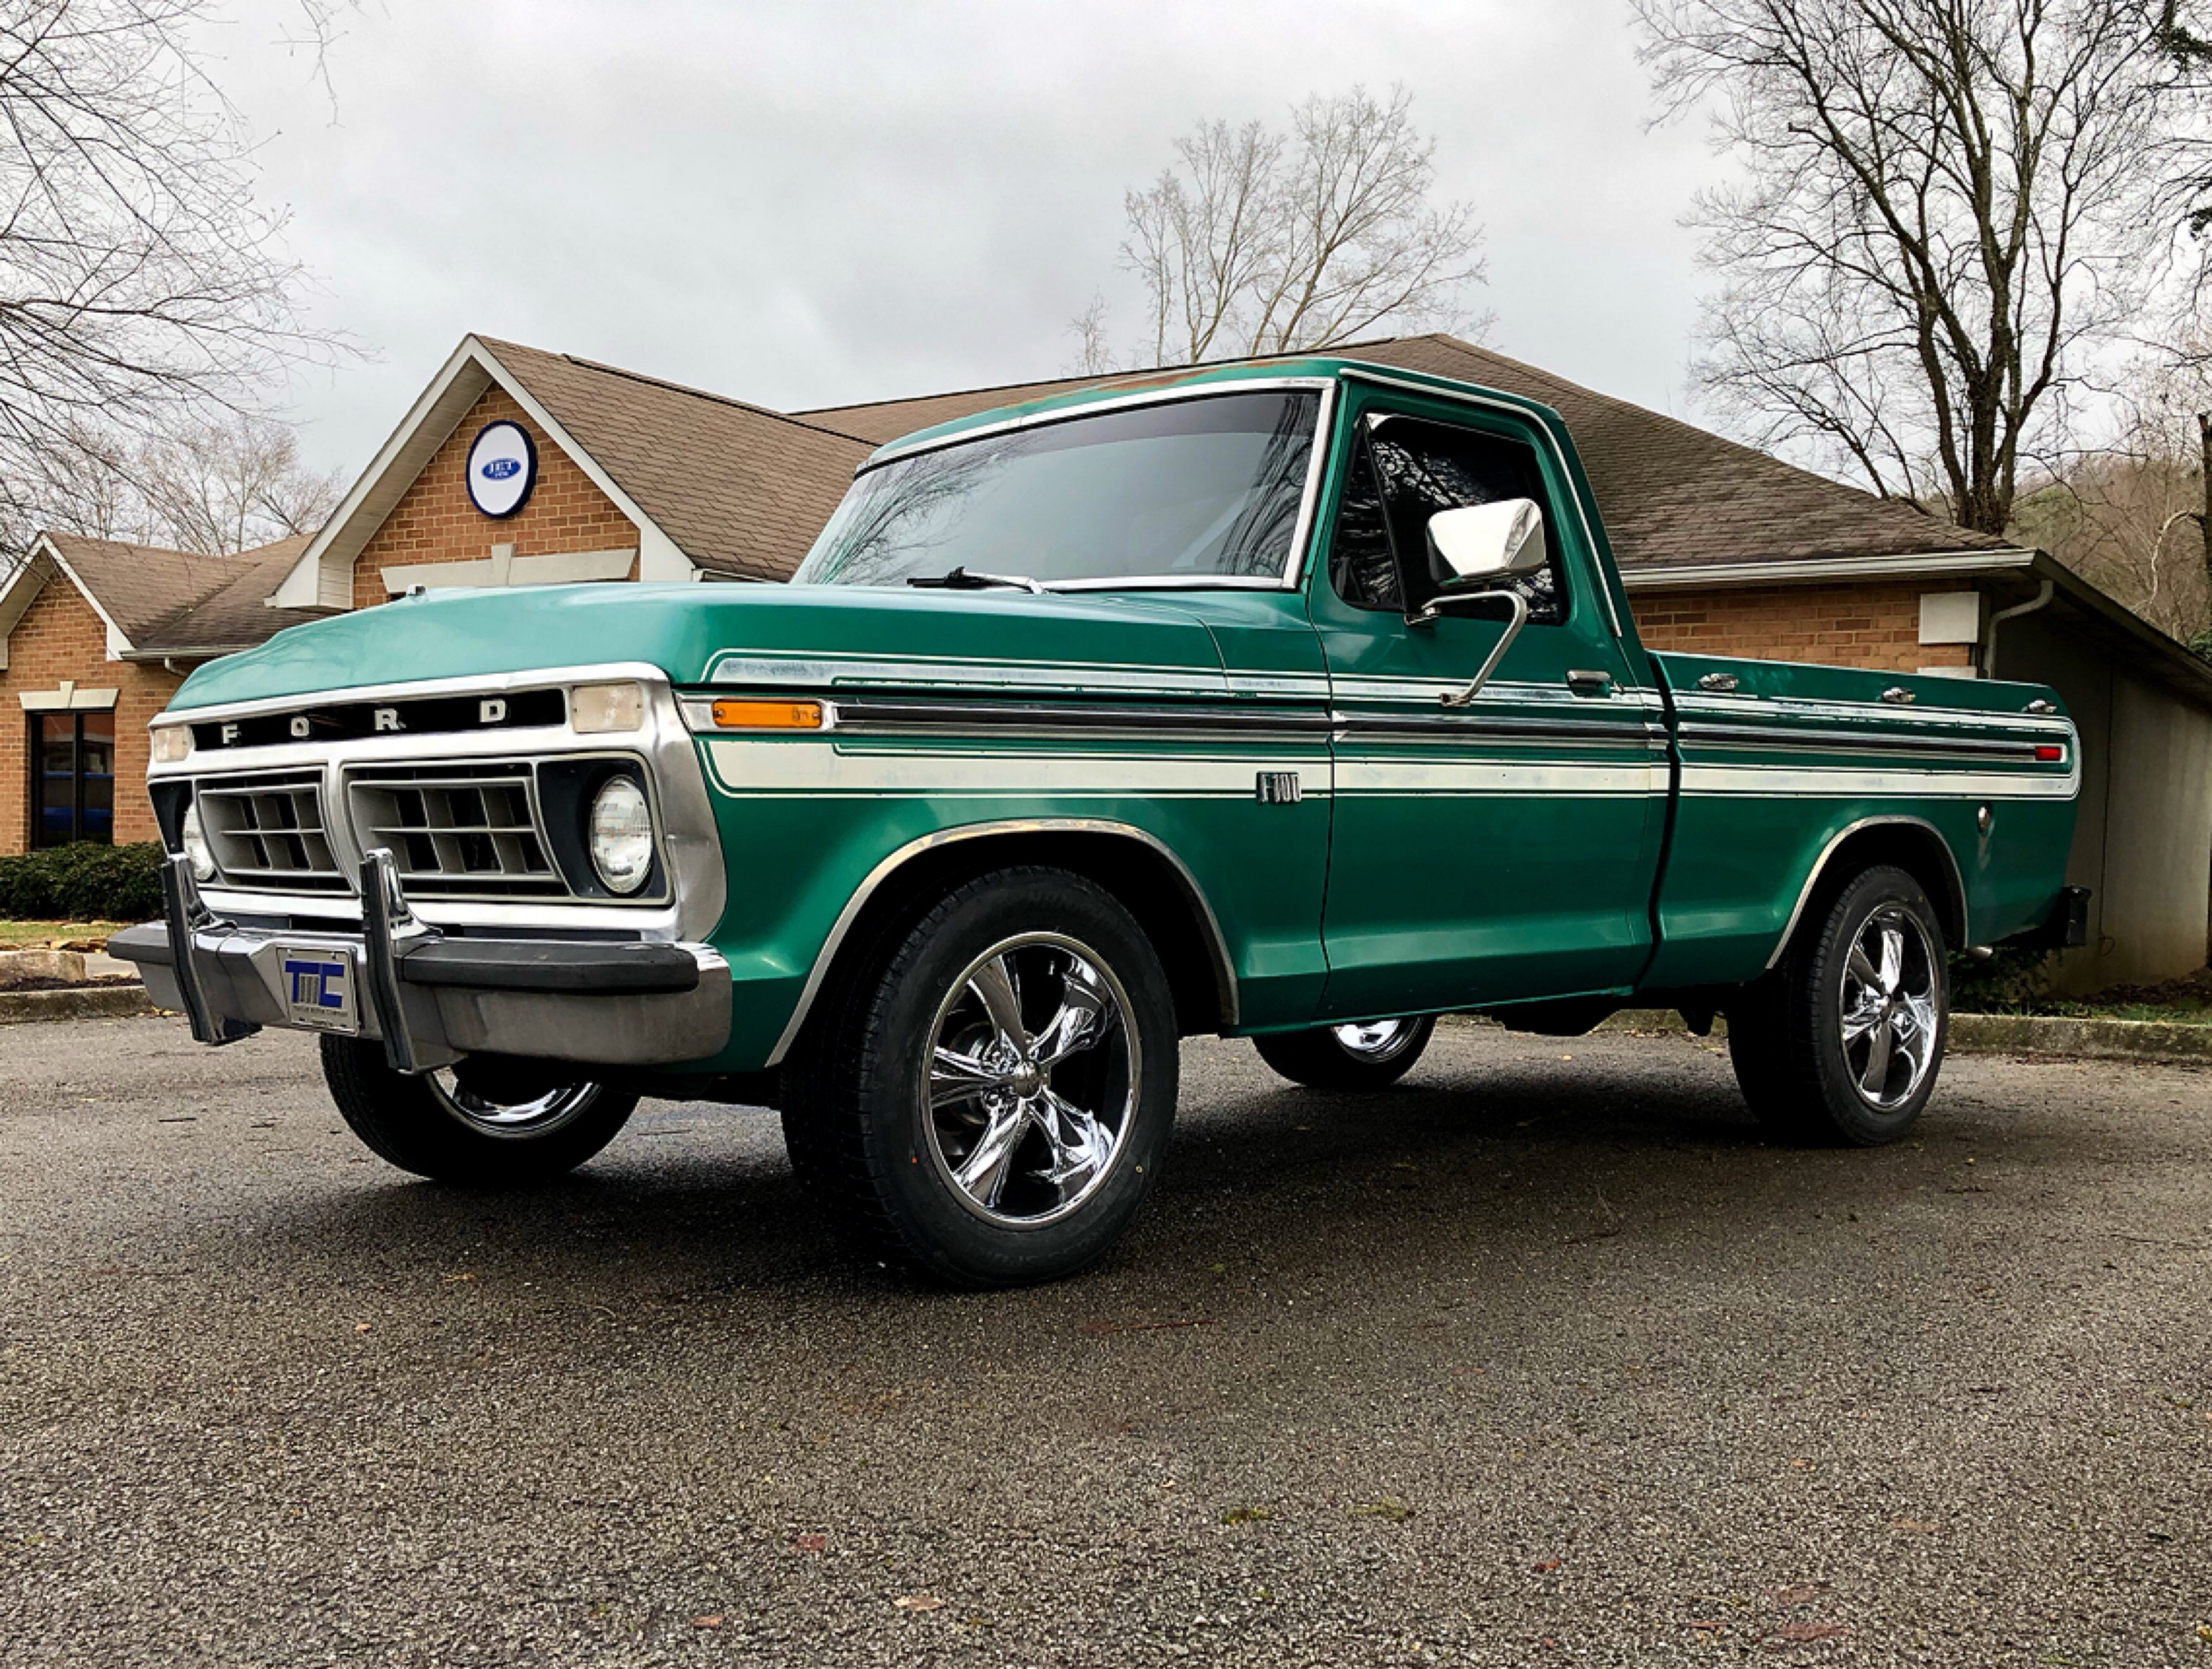 techguide_image_wheel package for 1976 ford f-100